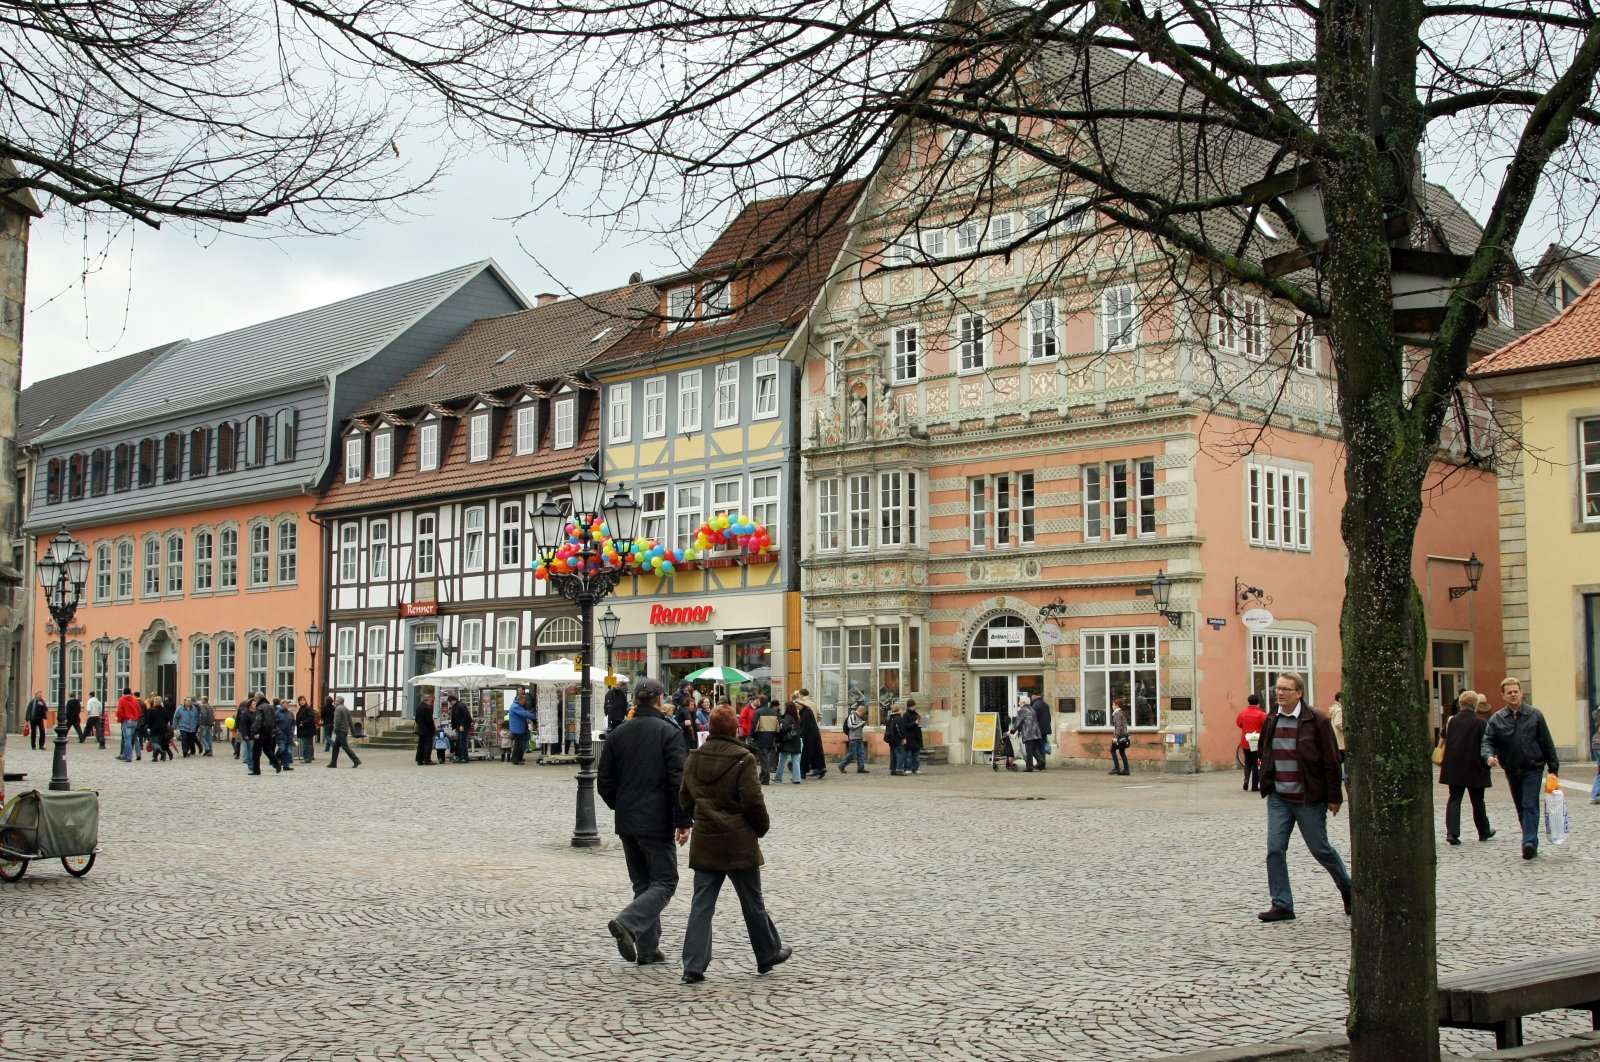 The city of Hamelin, Germany (Shutterstock Photo)